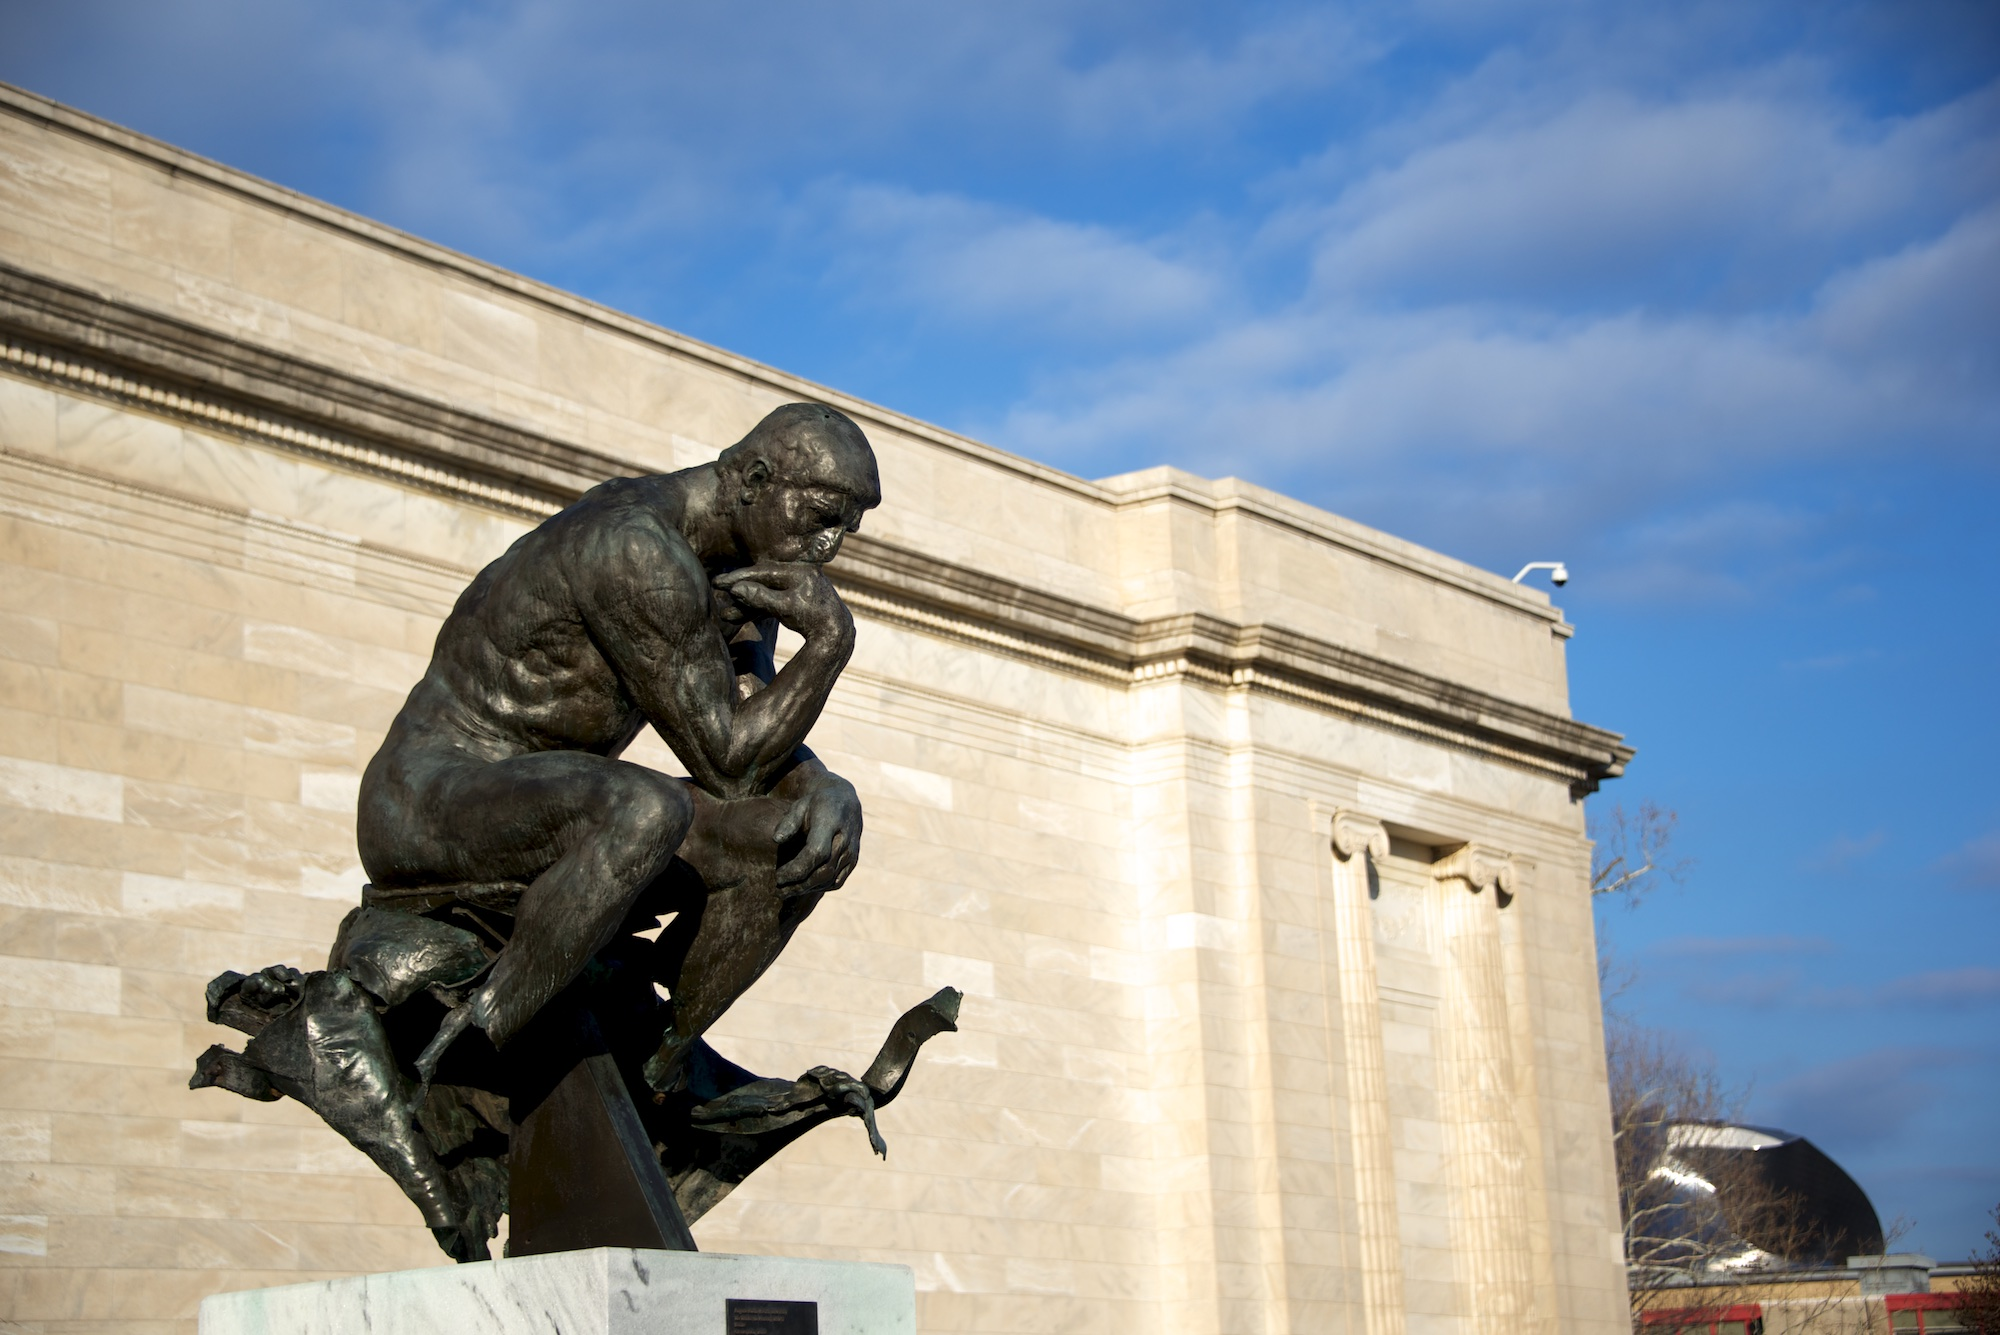 Monumental The Thinker by Rodin at Cleveland Museum of Art